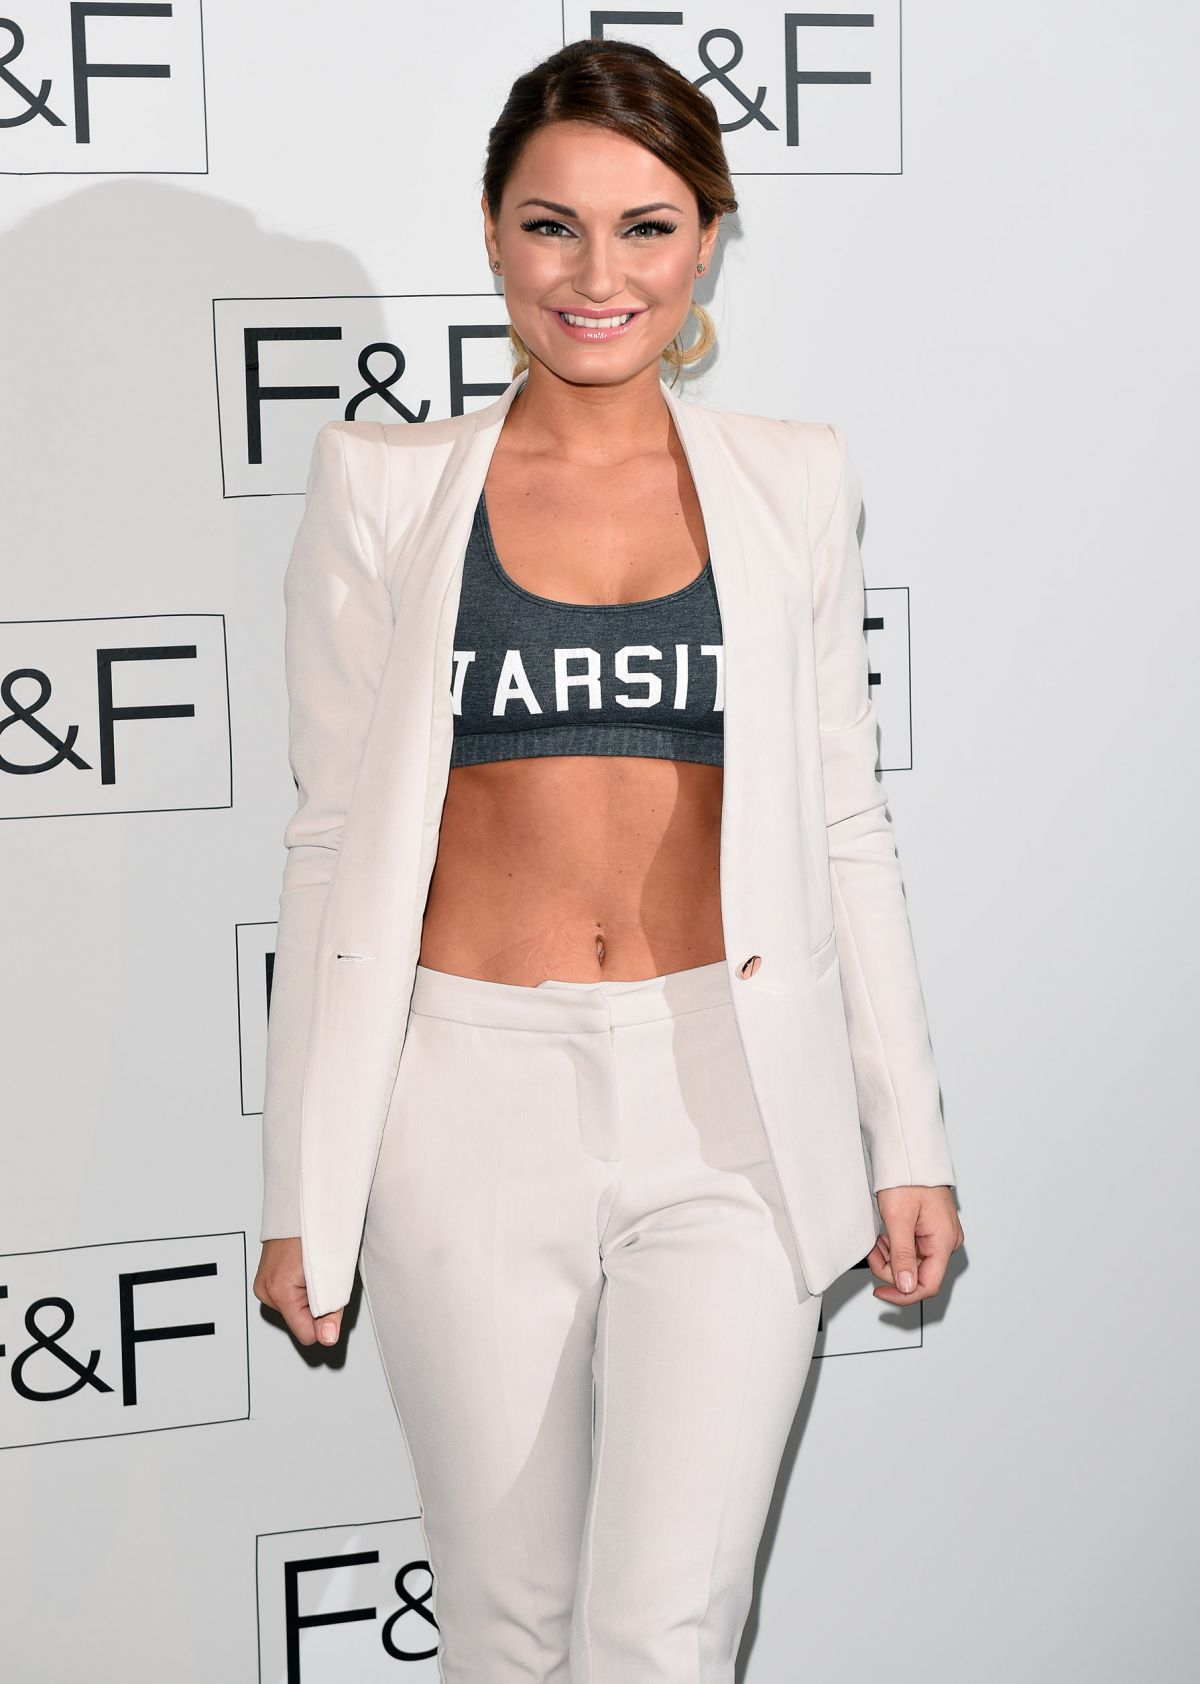 SAM FAIERS at F&F 2014 Fashion Show in London